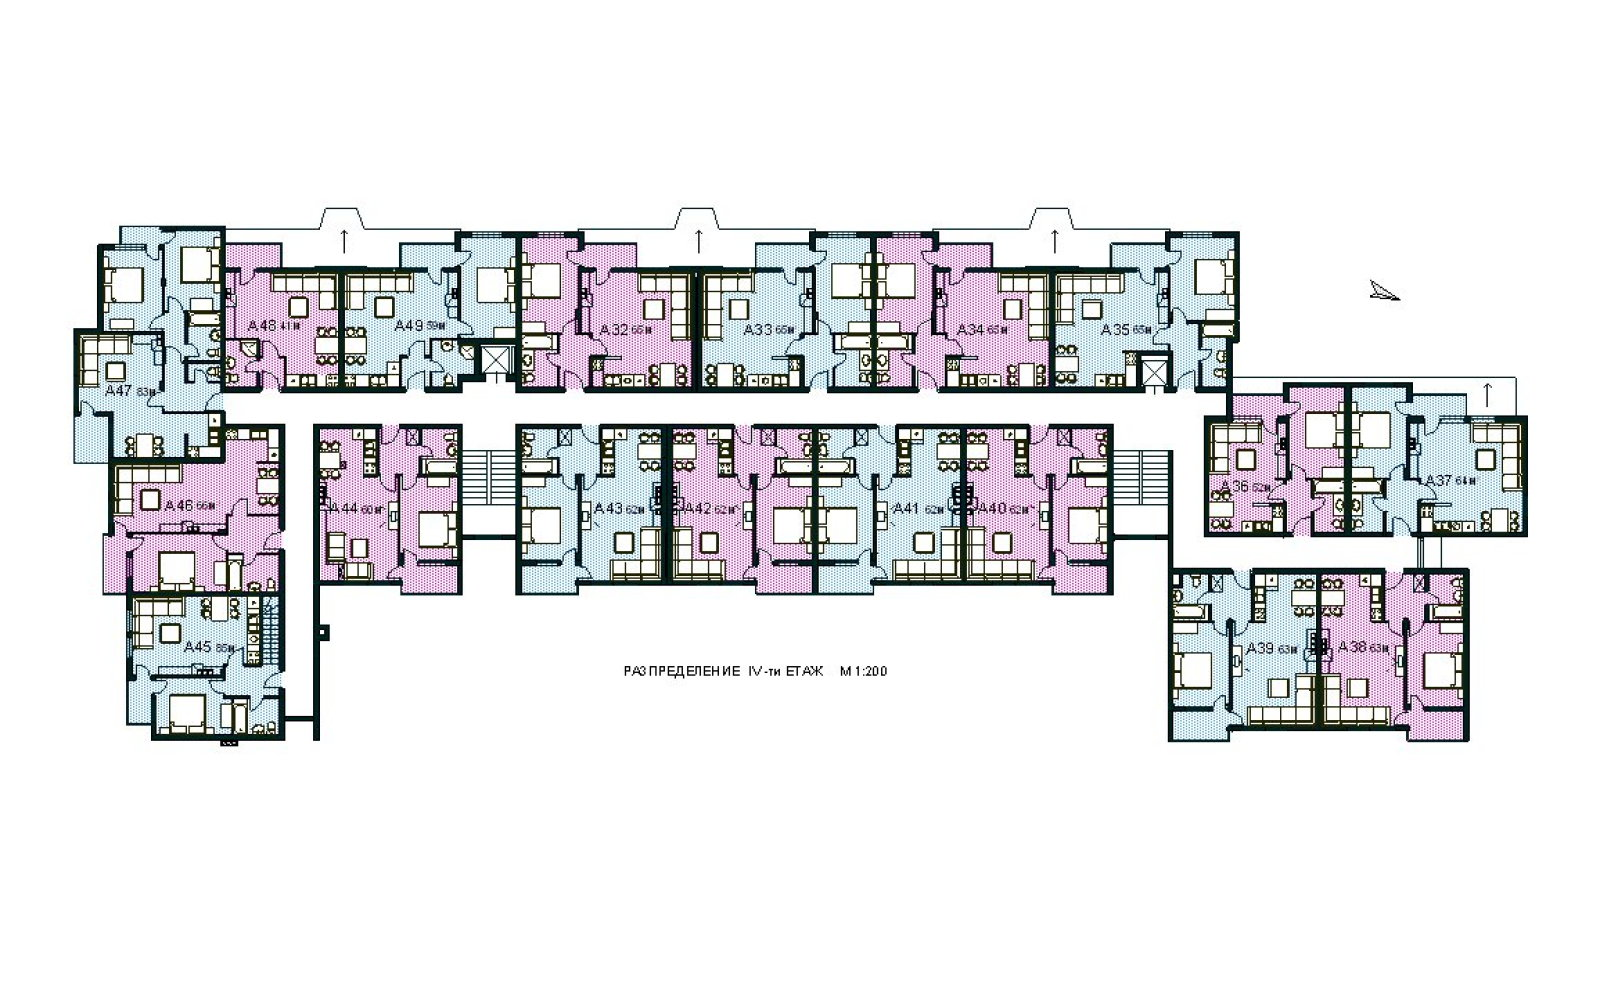 Apartment complex floor plans find house plans Floor plans for apartments